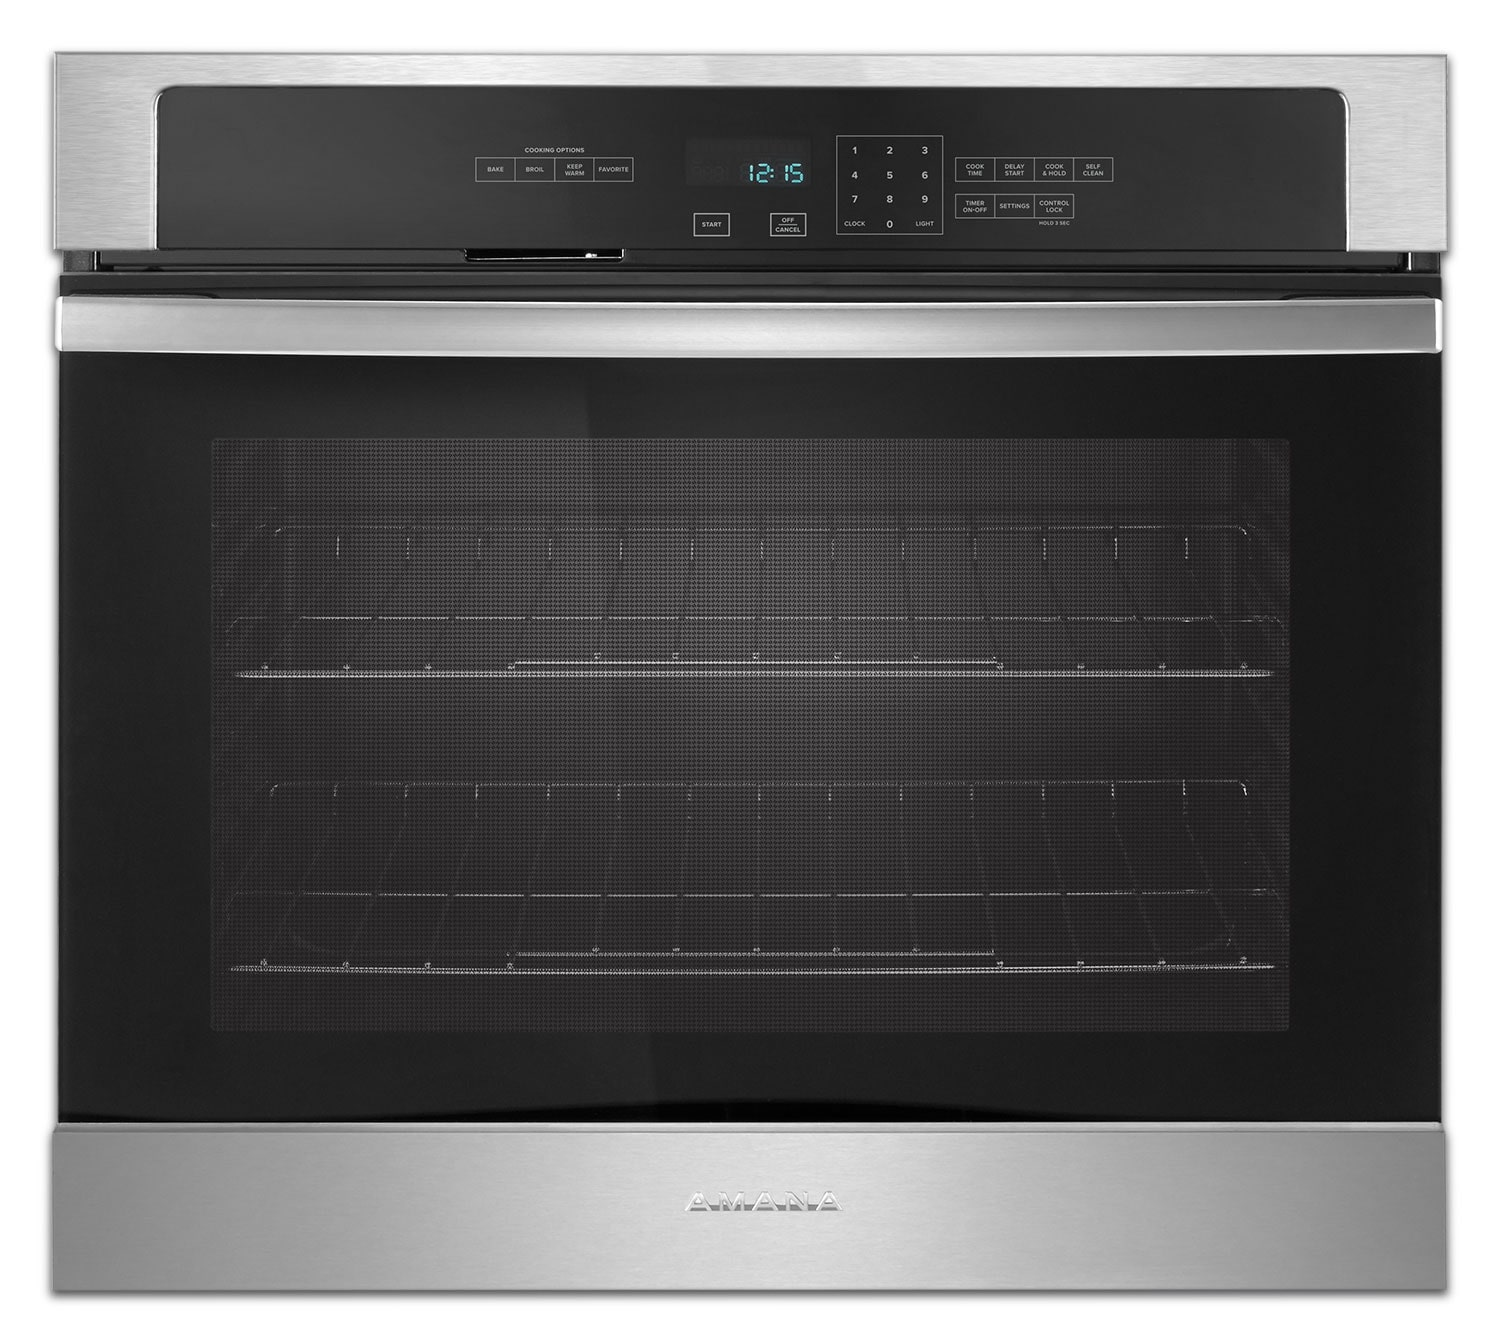 Cooking Products - Amana Stainless Steel Electric Wall Oven (5.0 Cu. Ft.) - AWO6313SFS